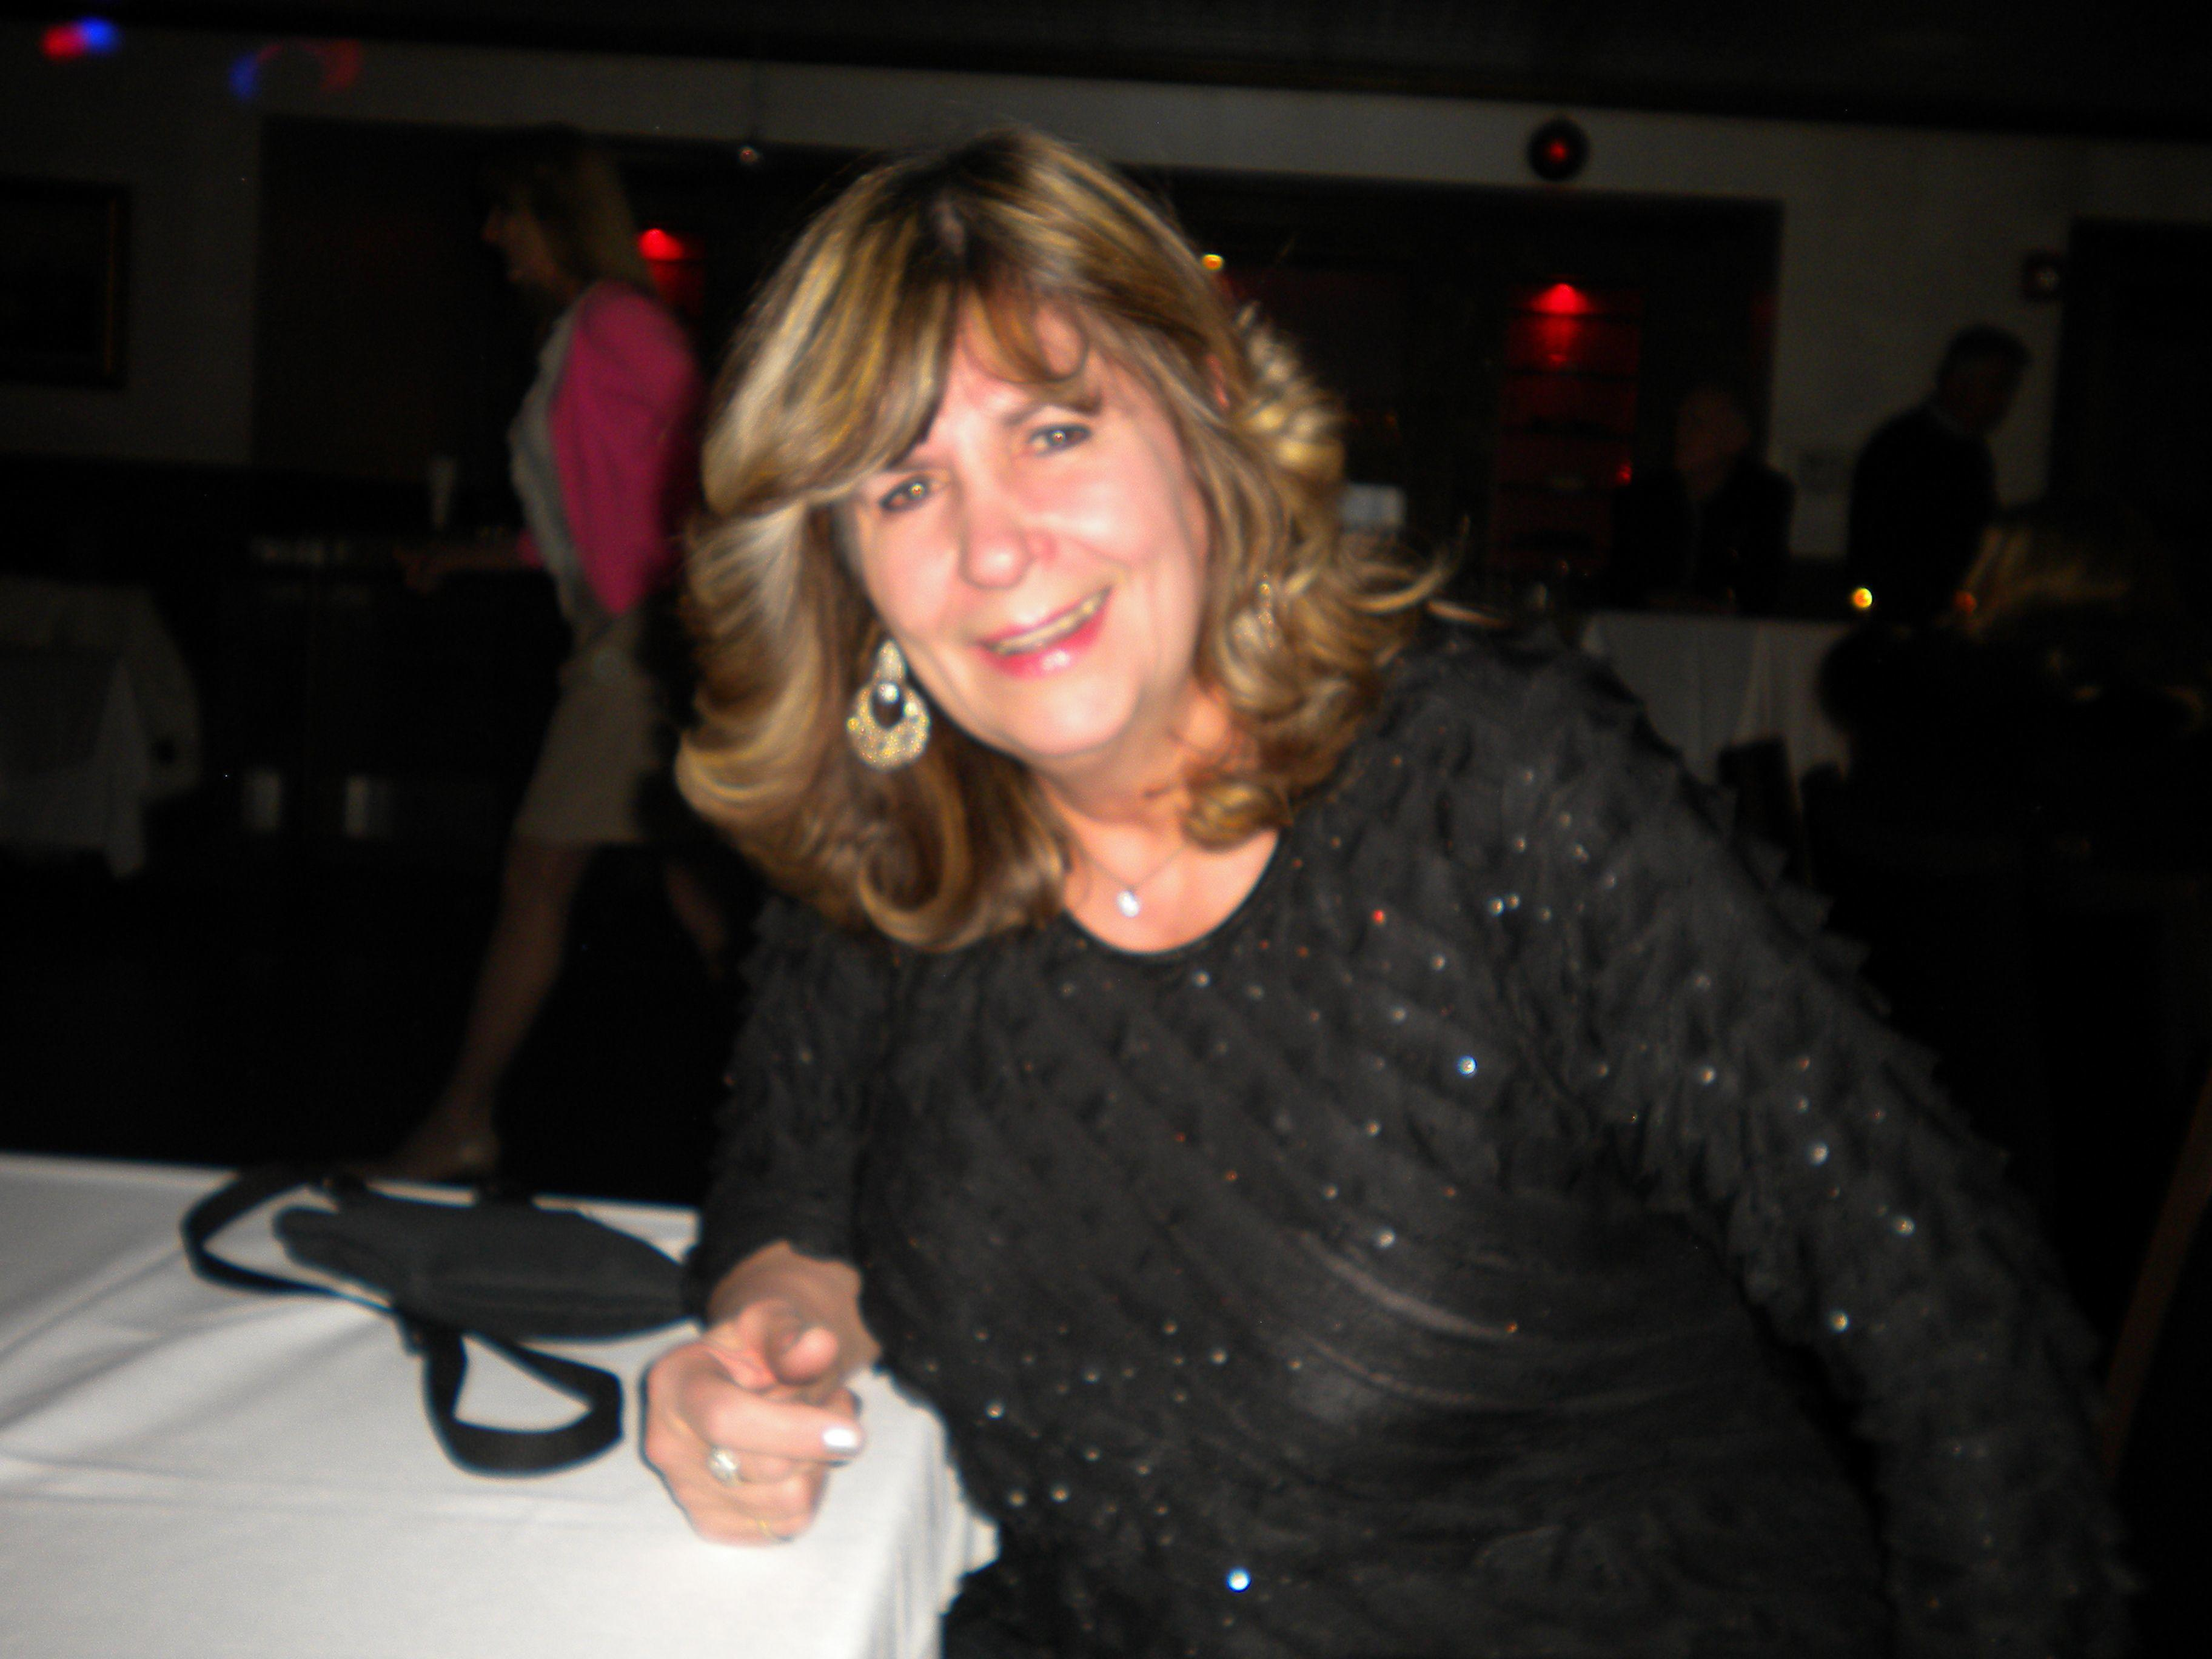 meet gail singles At our speed dating events you will discover it is a wonderful, fun, easy way to meet singles in one great evening  learn more about 7 in heaven and how we got .